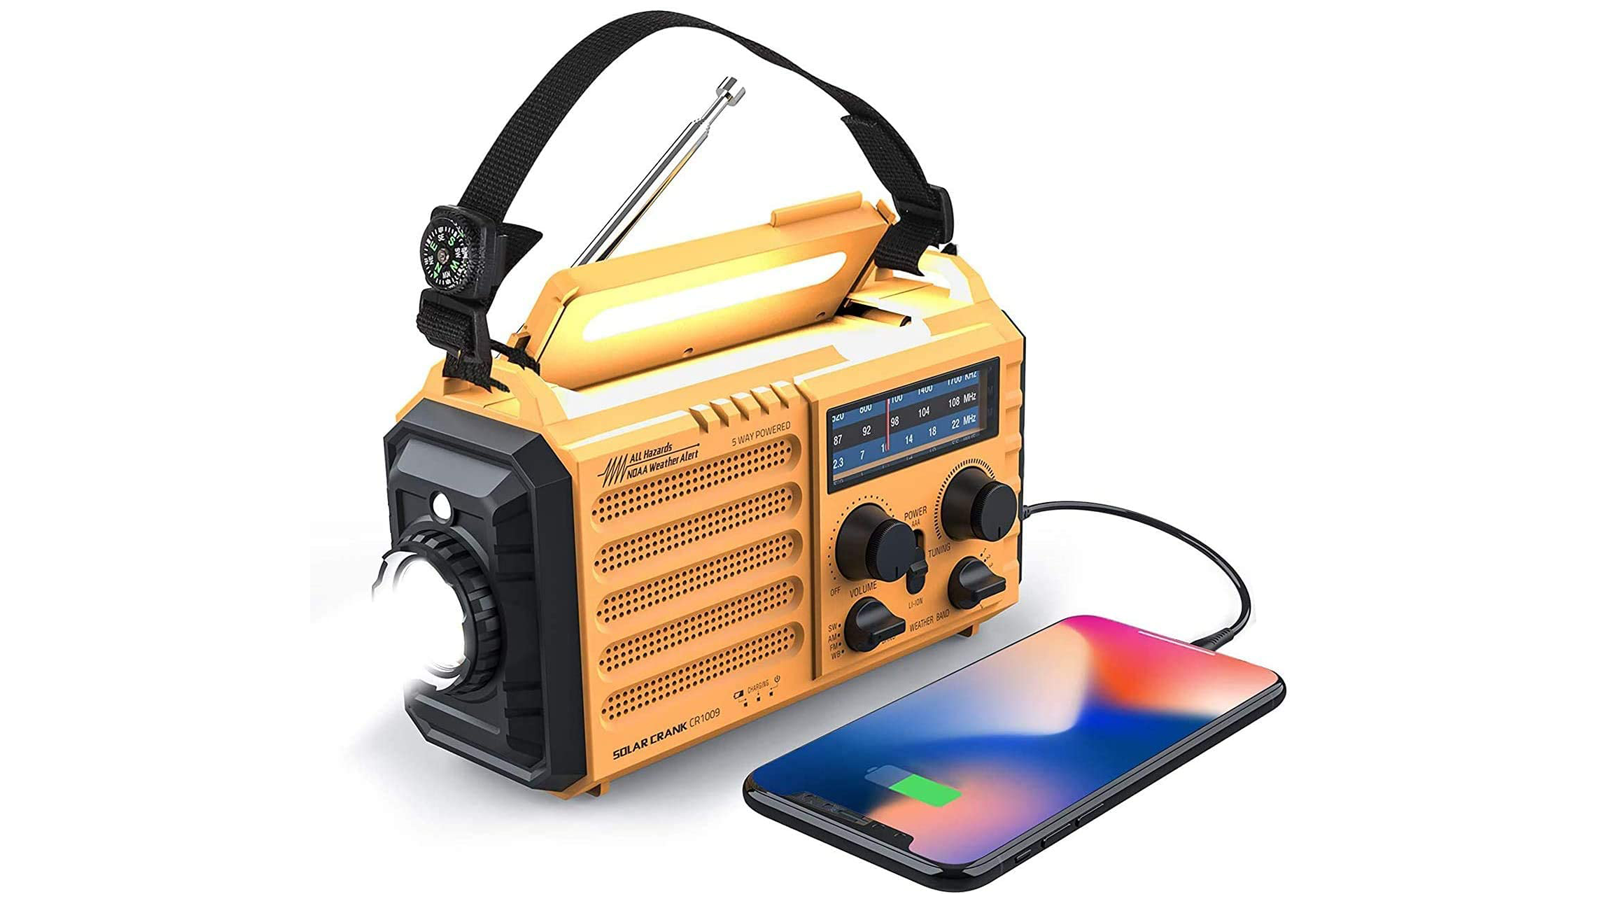 Stay Prepared for Storms and More with This Feature-Rich Weather Radio